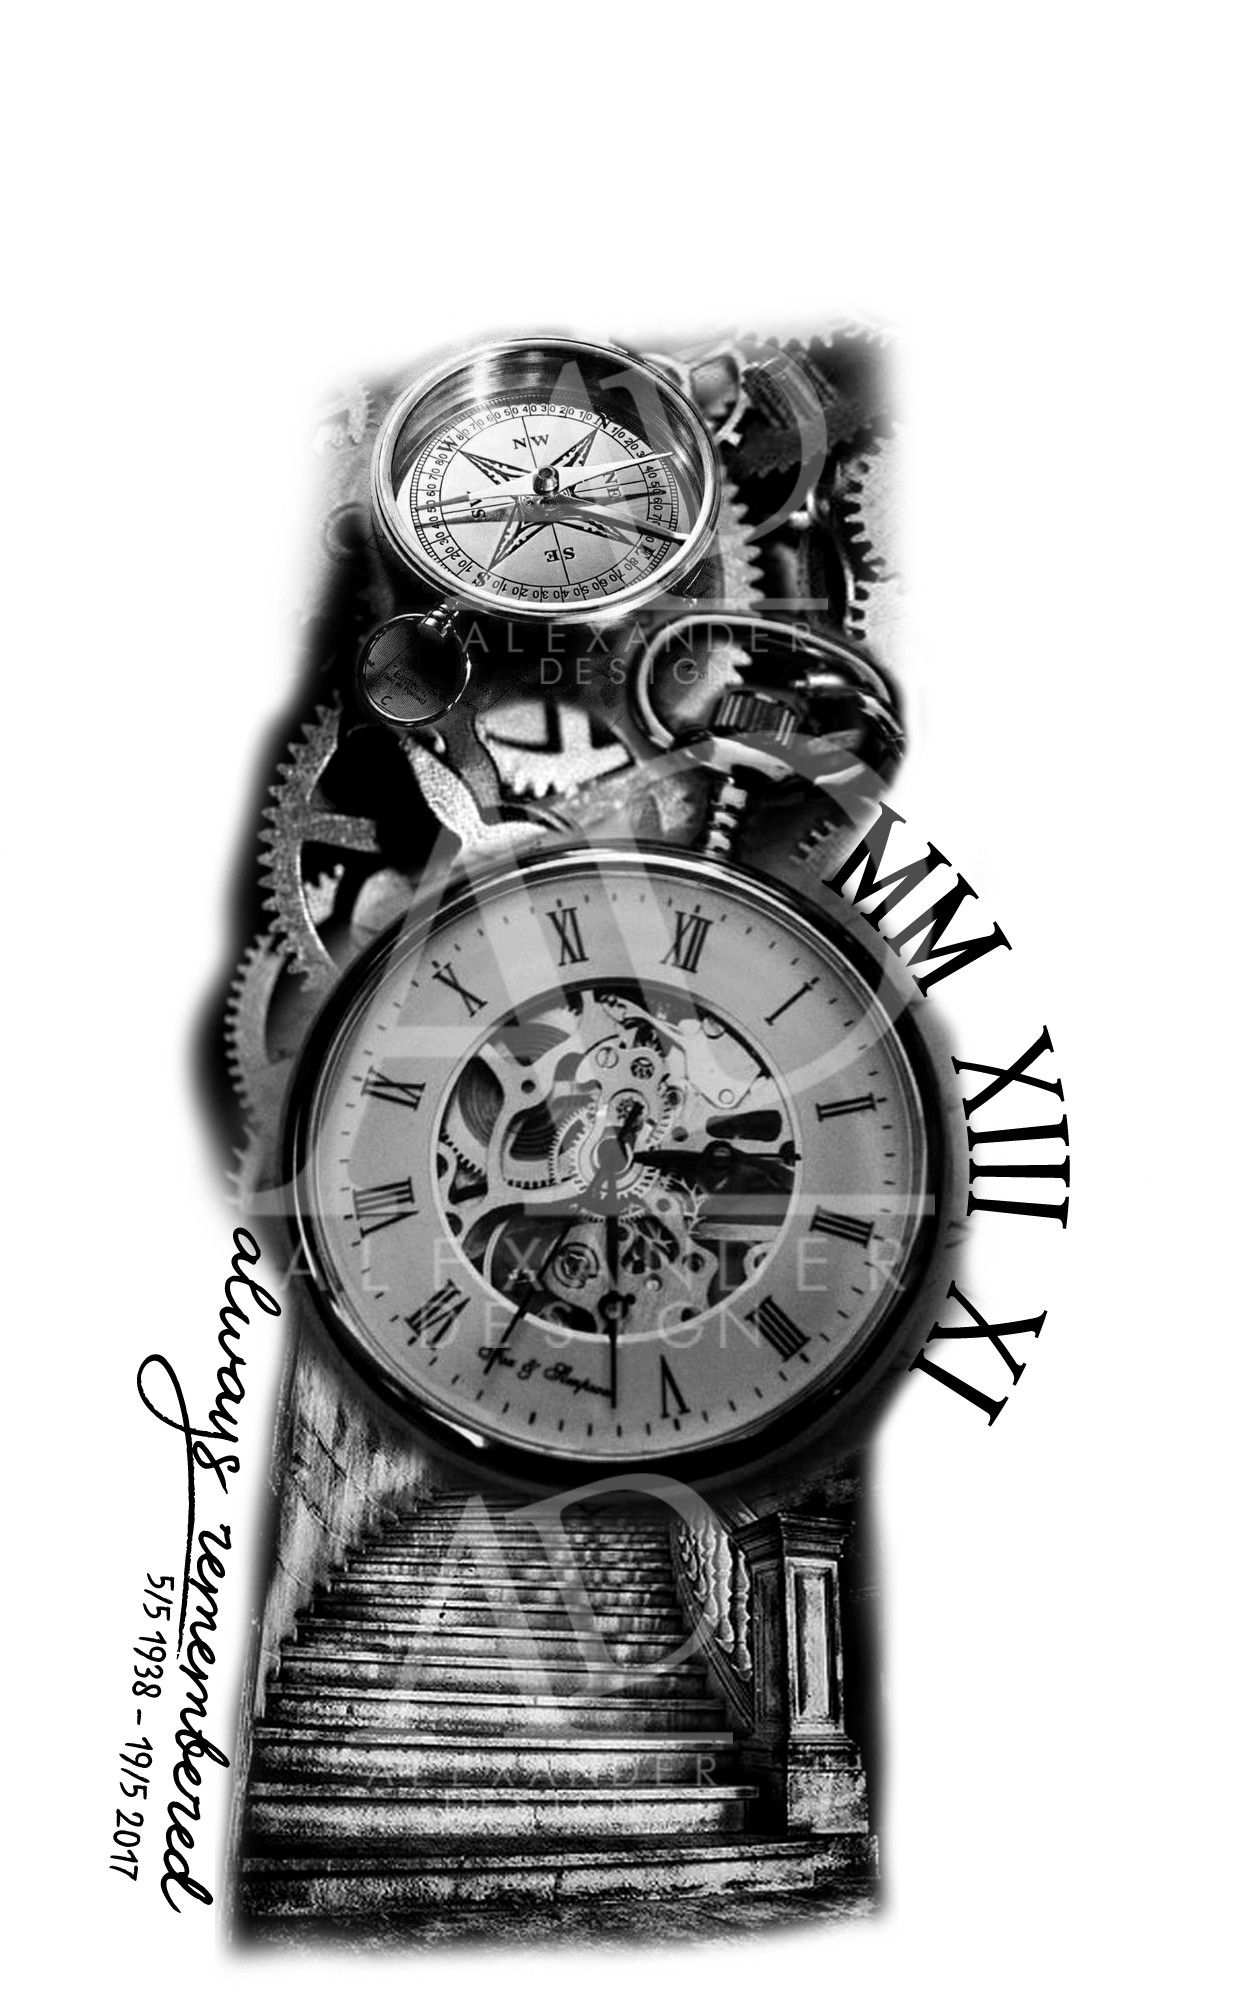 Sleeve Tattoo With A Pocketwatch Stair Clock Gears Compass Roman Numbers And Text Example Tattoo Sleeve Designs Watch Tattoo Design Clock Tattoo